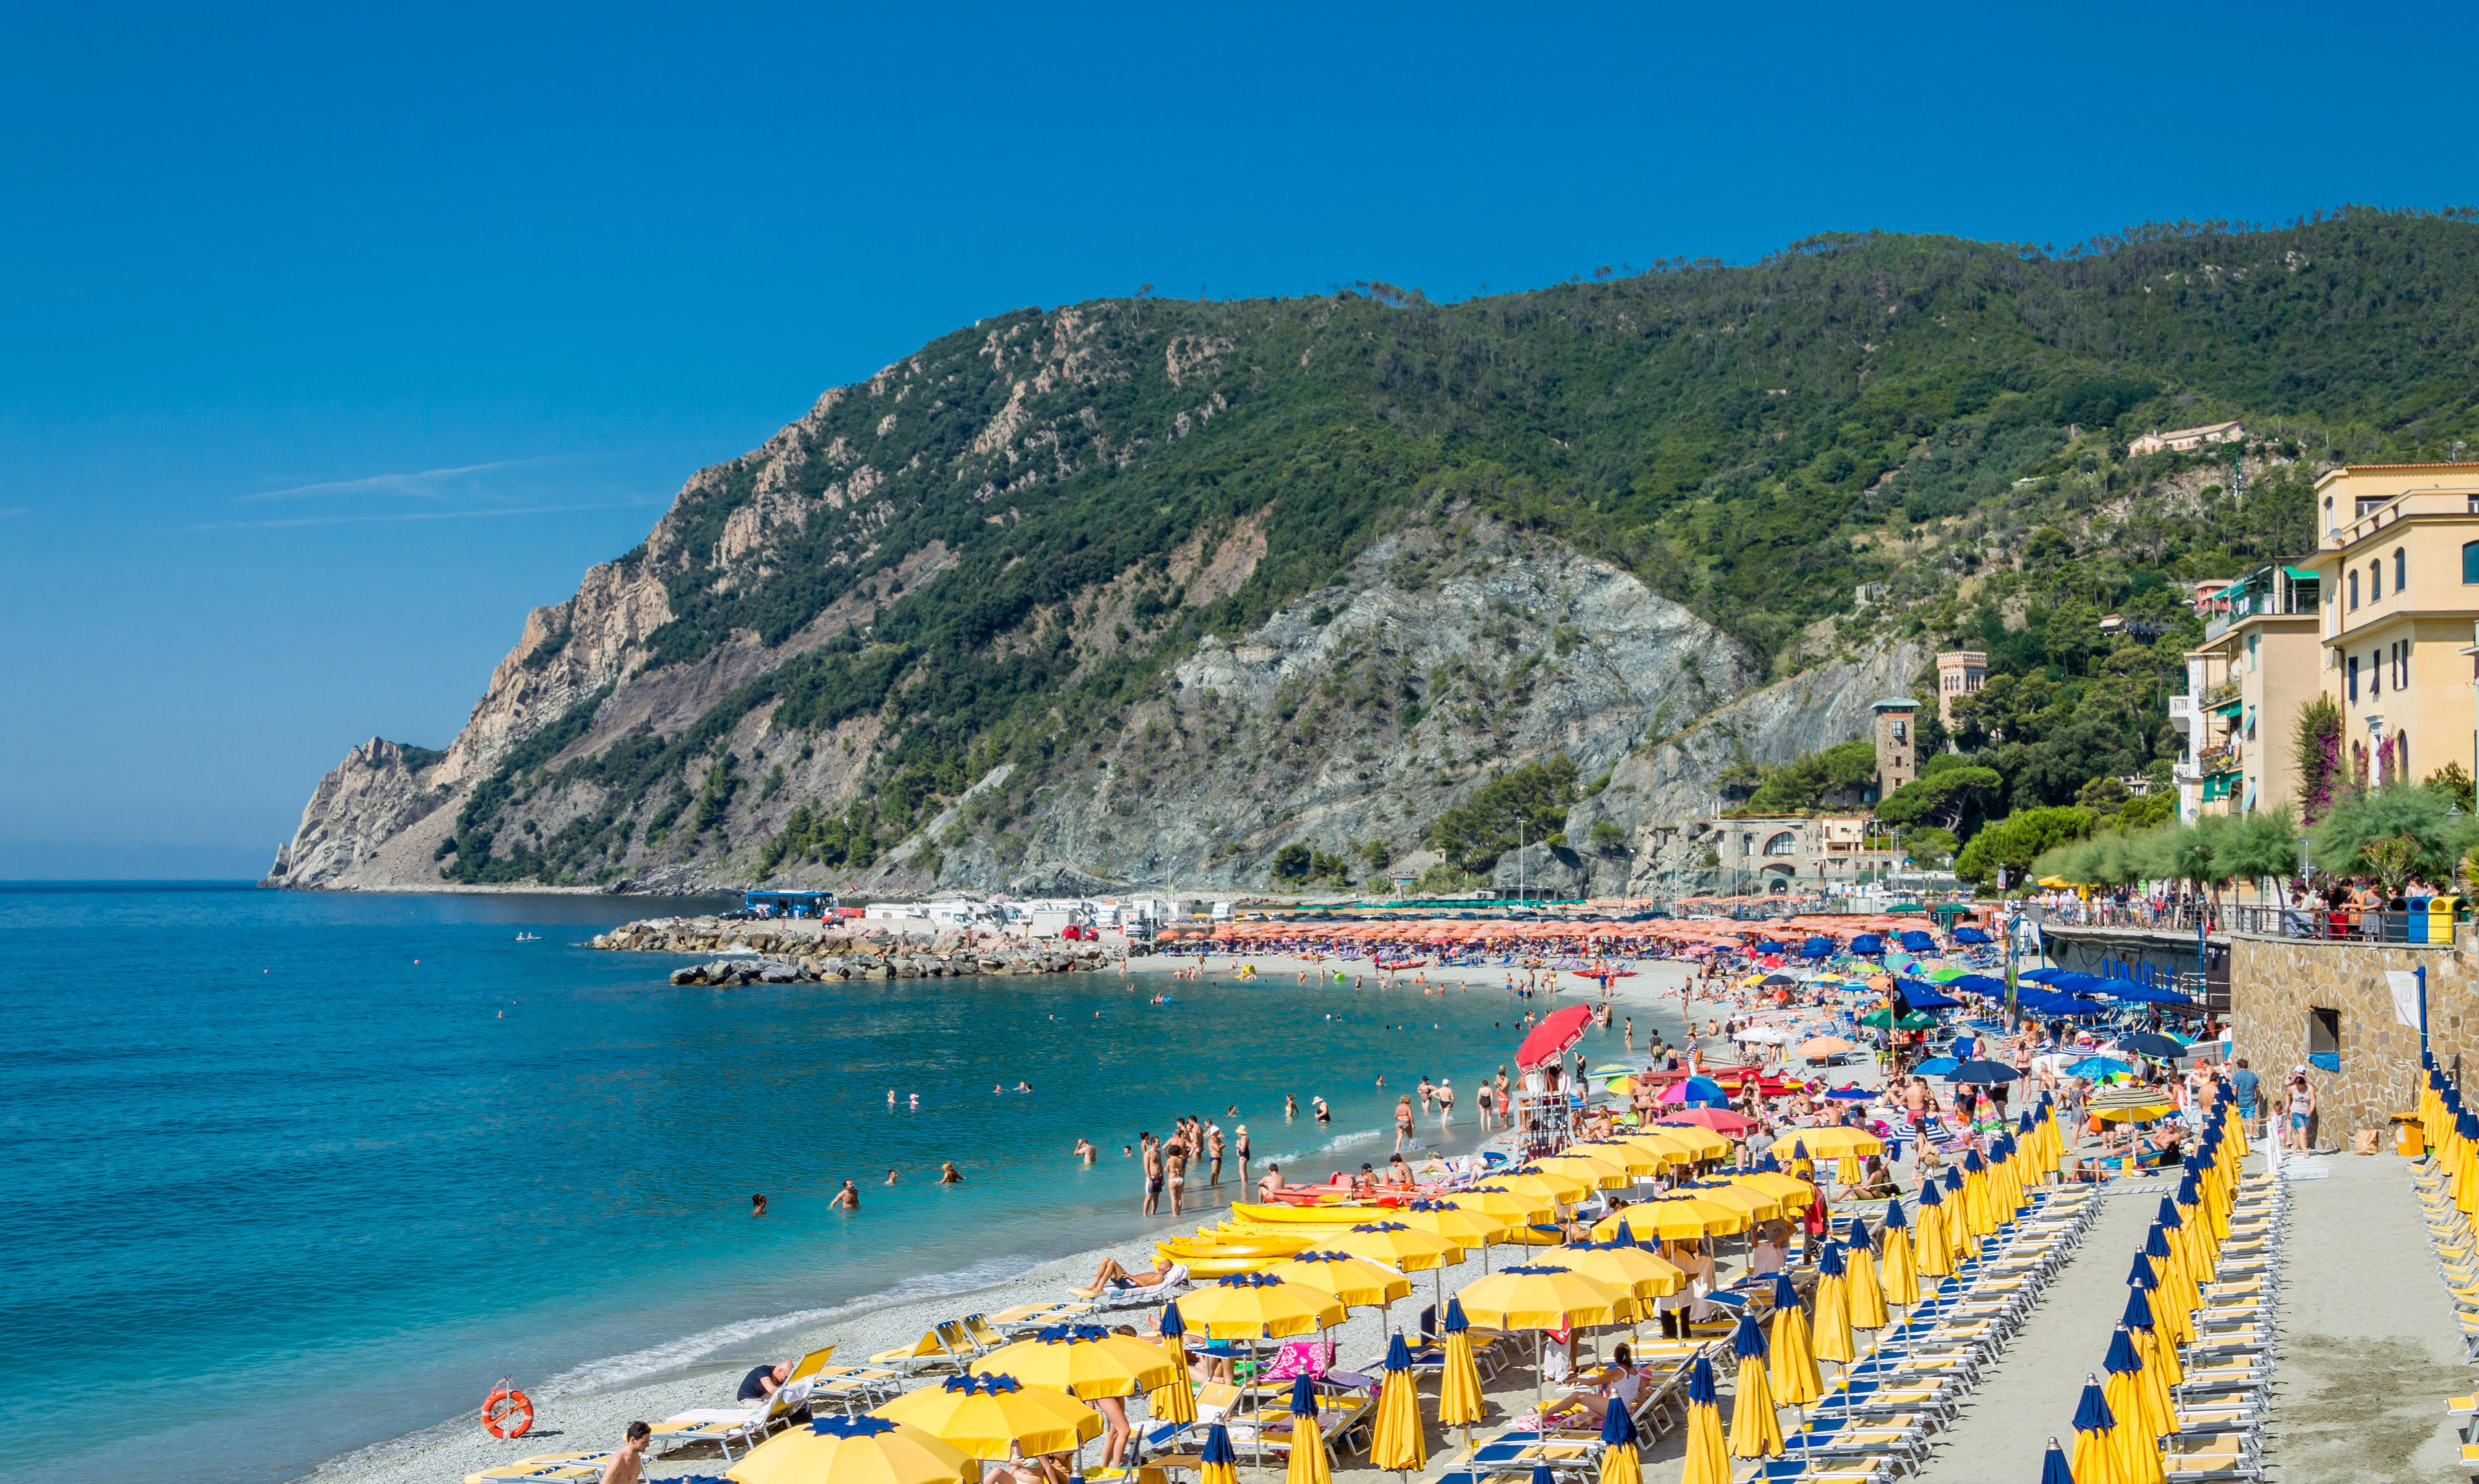 cinque-terre-umbrellas http://itgirlweddings.com/4-things-consider-before-jetting-off-your-honeymoon/